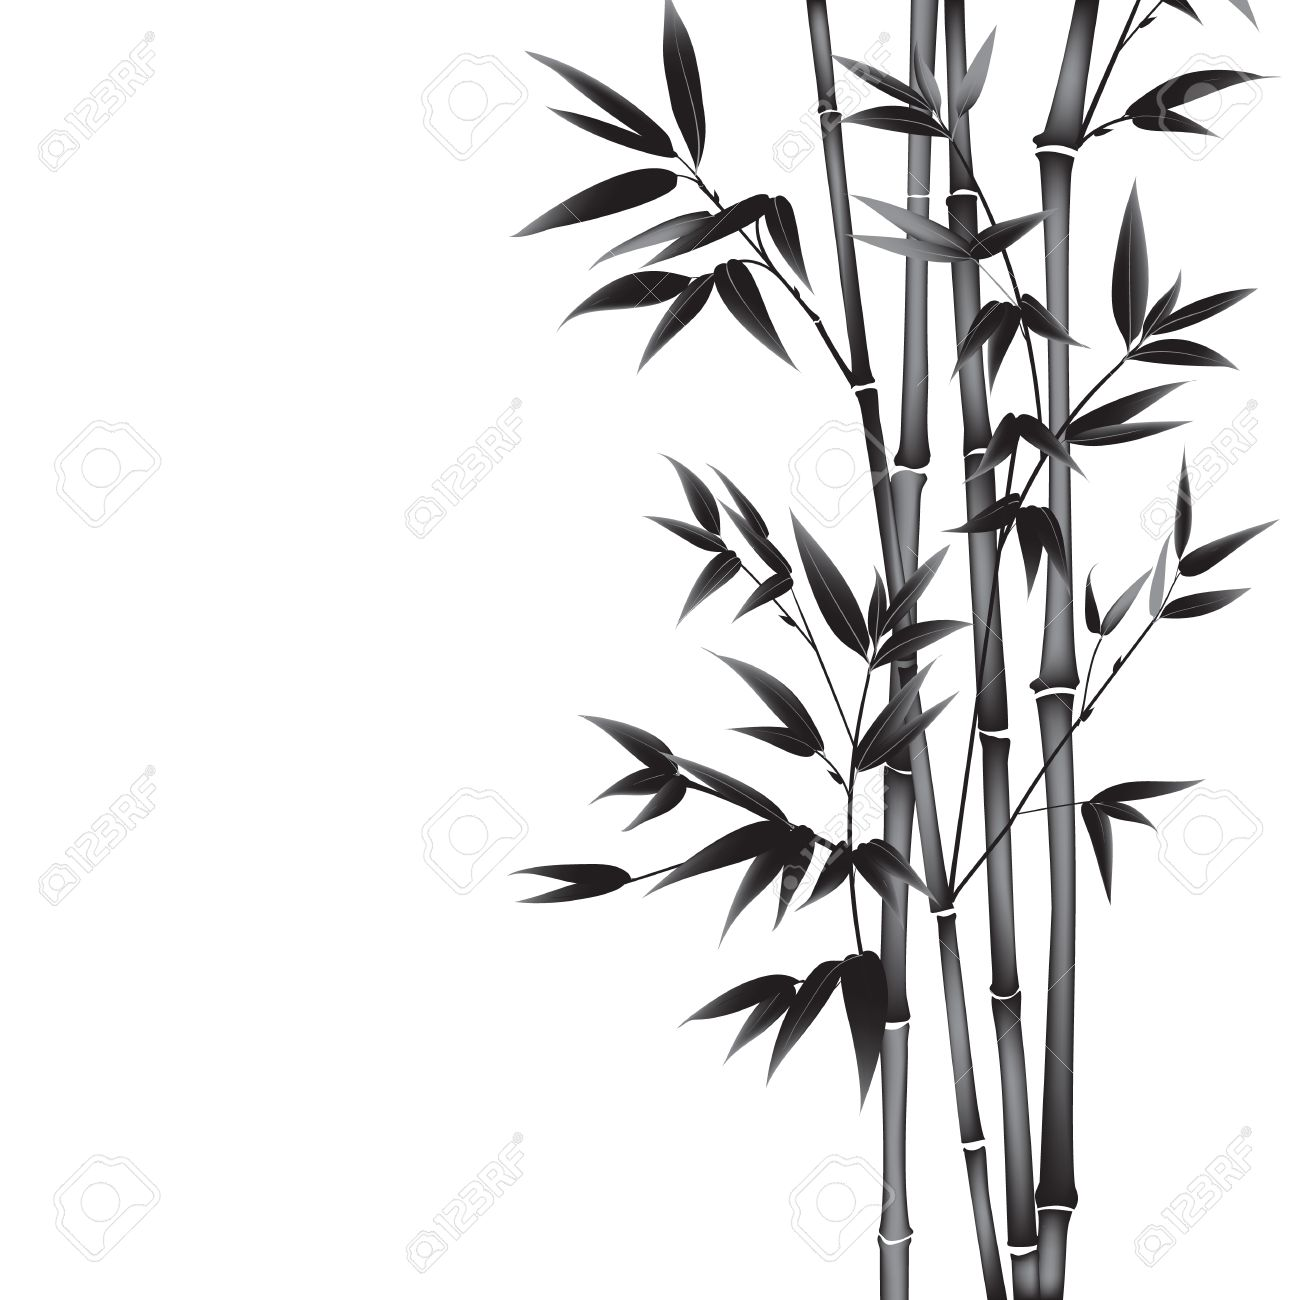 1300x1300 Ink Paint Bamboo Bush. Card With Black Bamboo Plants Isolated